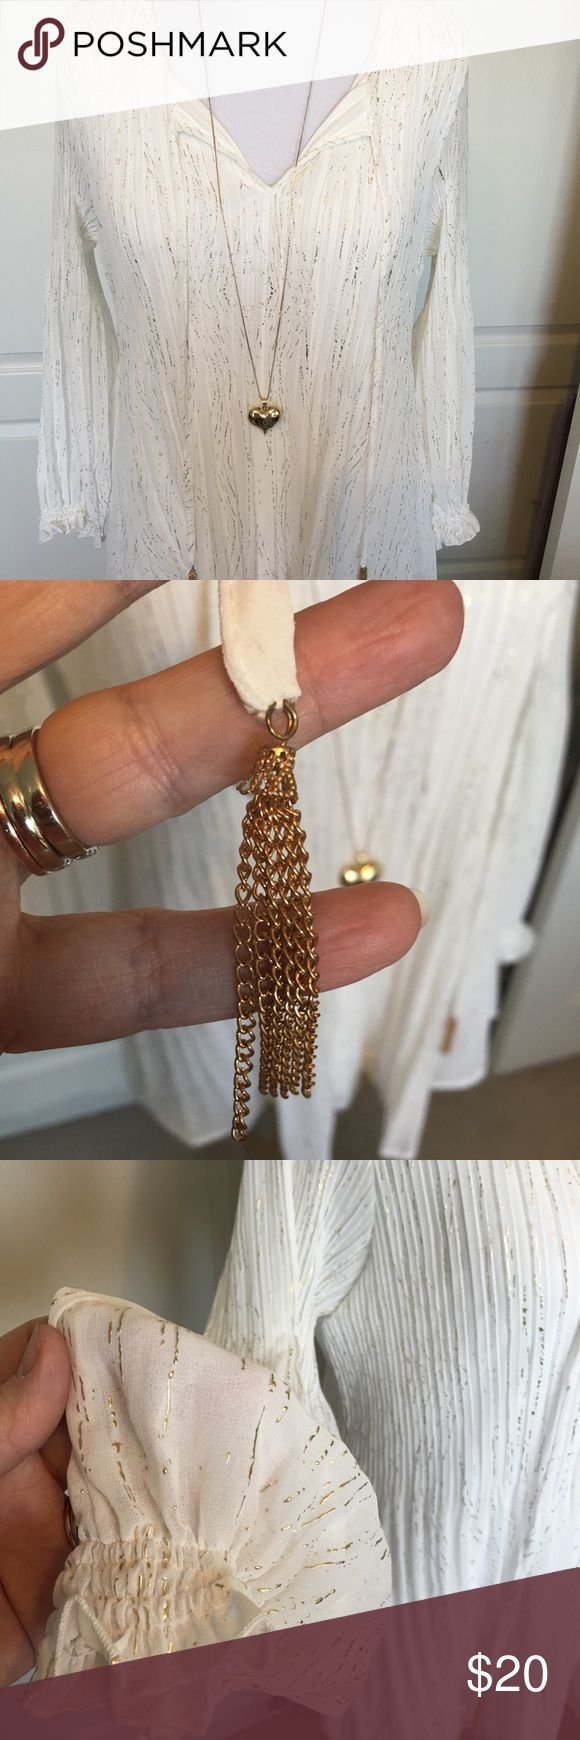 """🆕Melissa Paige Woman white and gold tunic This beautiful tunic has a fully lined bodice for modesty and measures 30"""" long.  There is a chain detail on the end of the ties and metallic gold throughout. melissa paige woman Tops Tunics"""